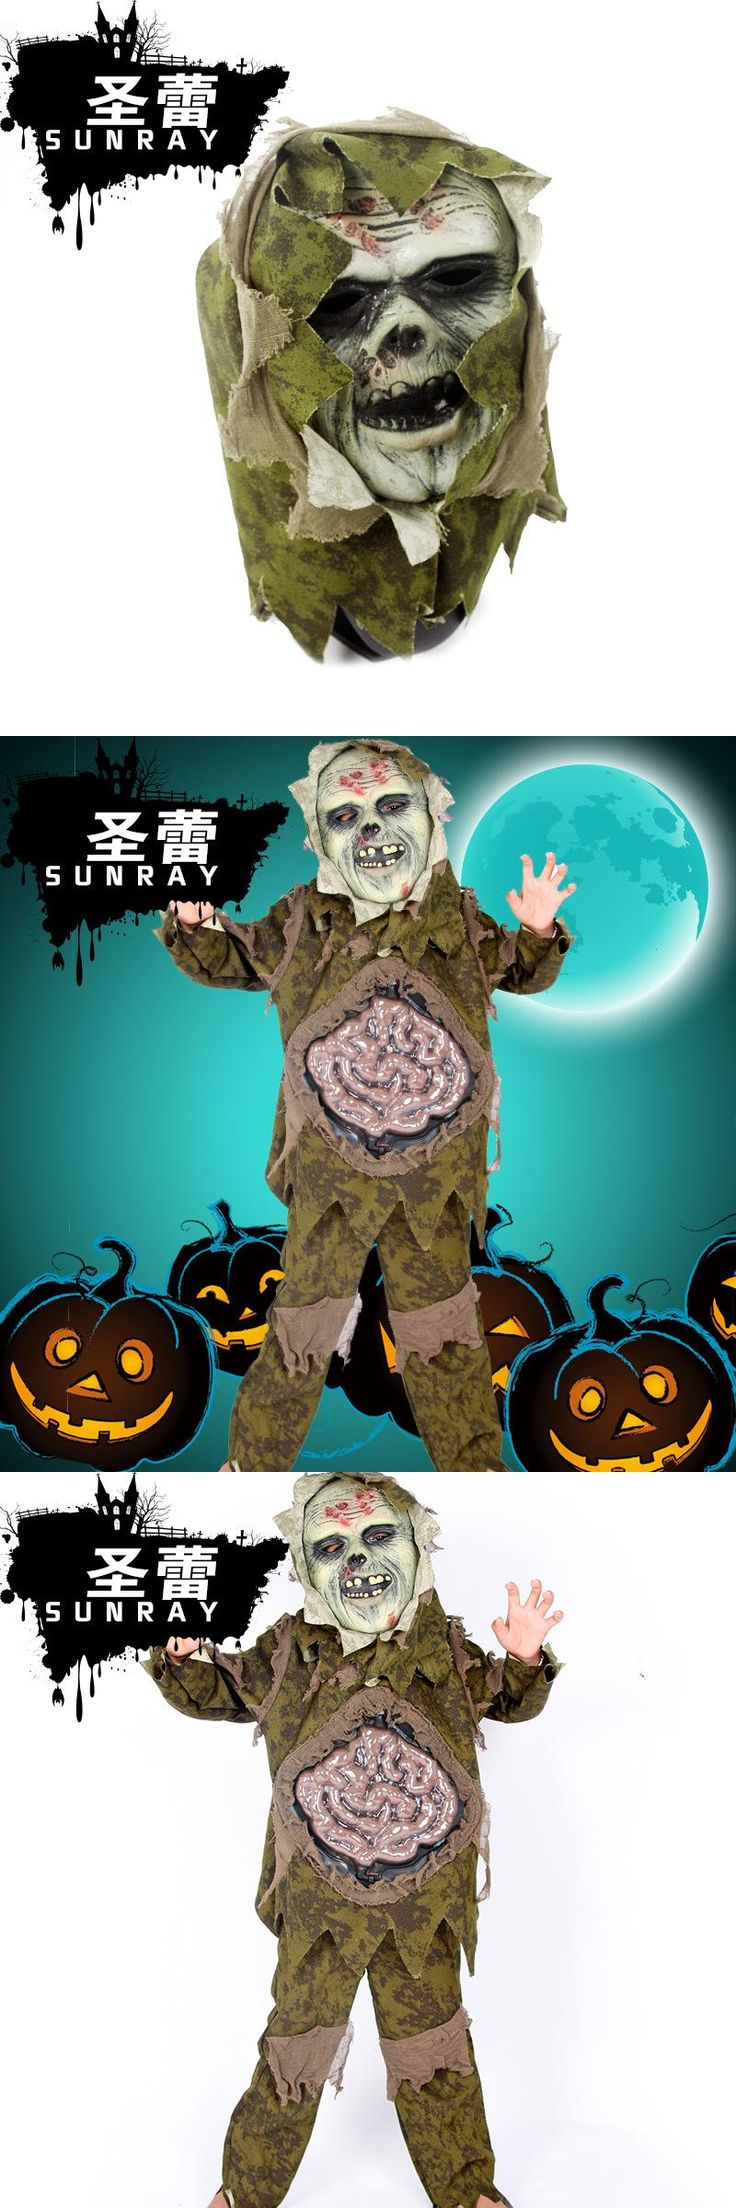 New Halloween Duchang Strange Ghost Scary Costumes Boys/Girls Zombies Children Cosplay Costume Shirt+Pant+Mask 3pcs Set